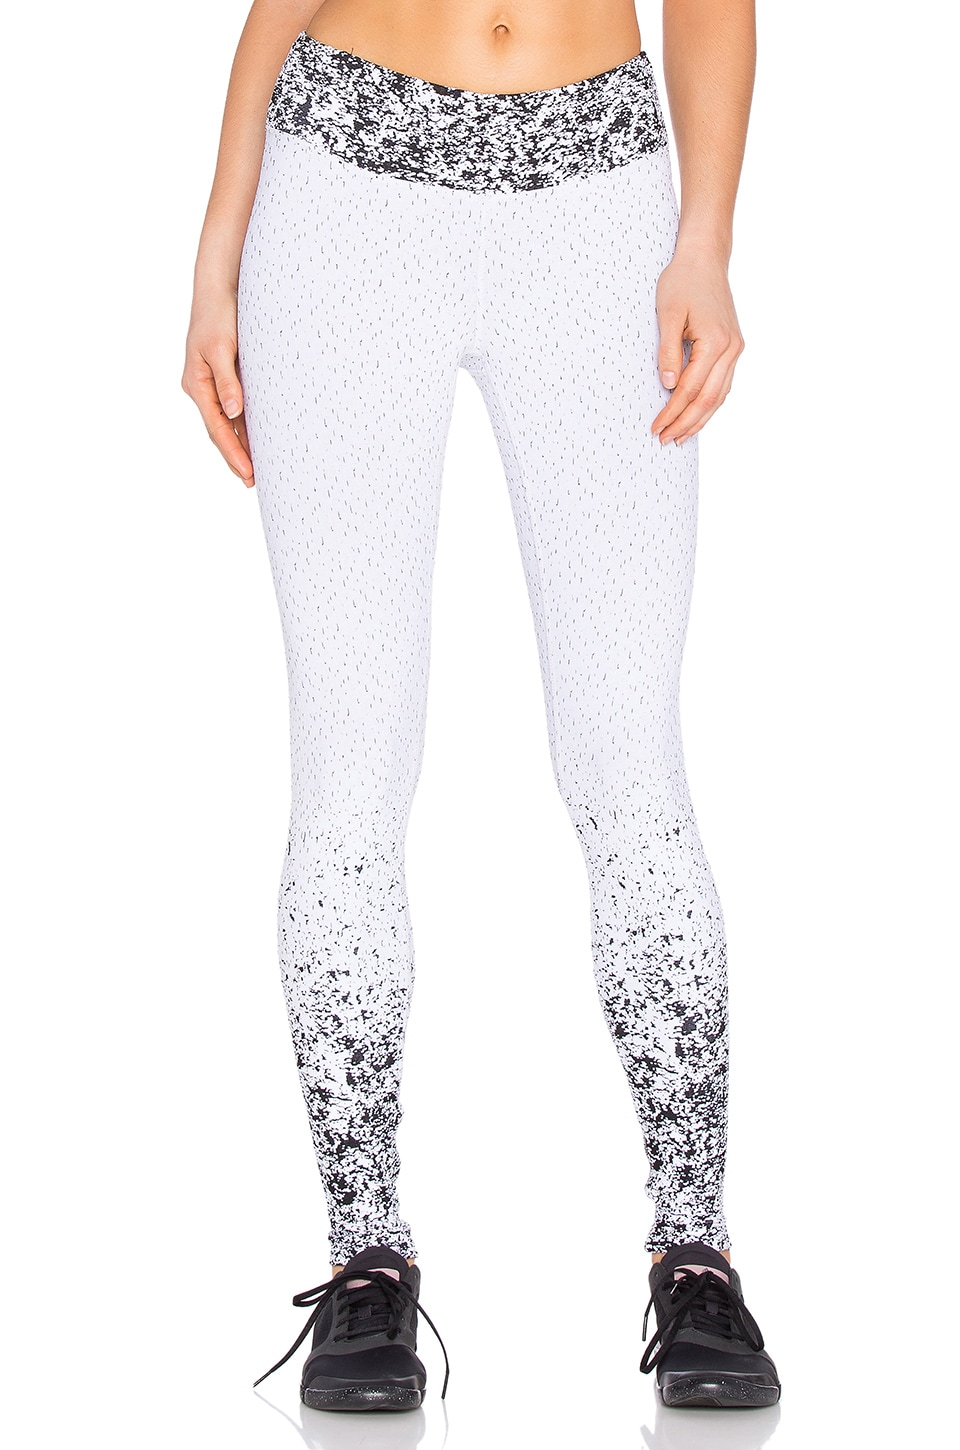 Pixelate Cropped Legging by KORAL